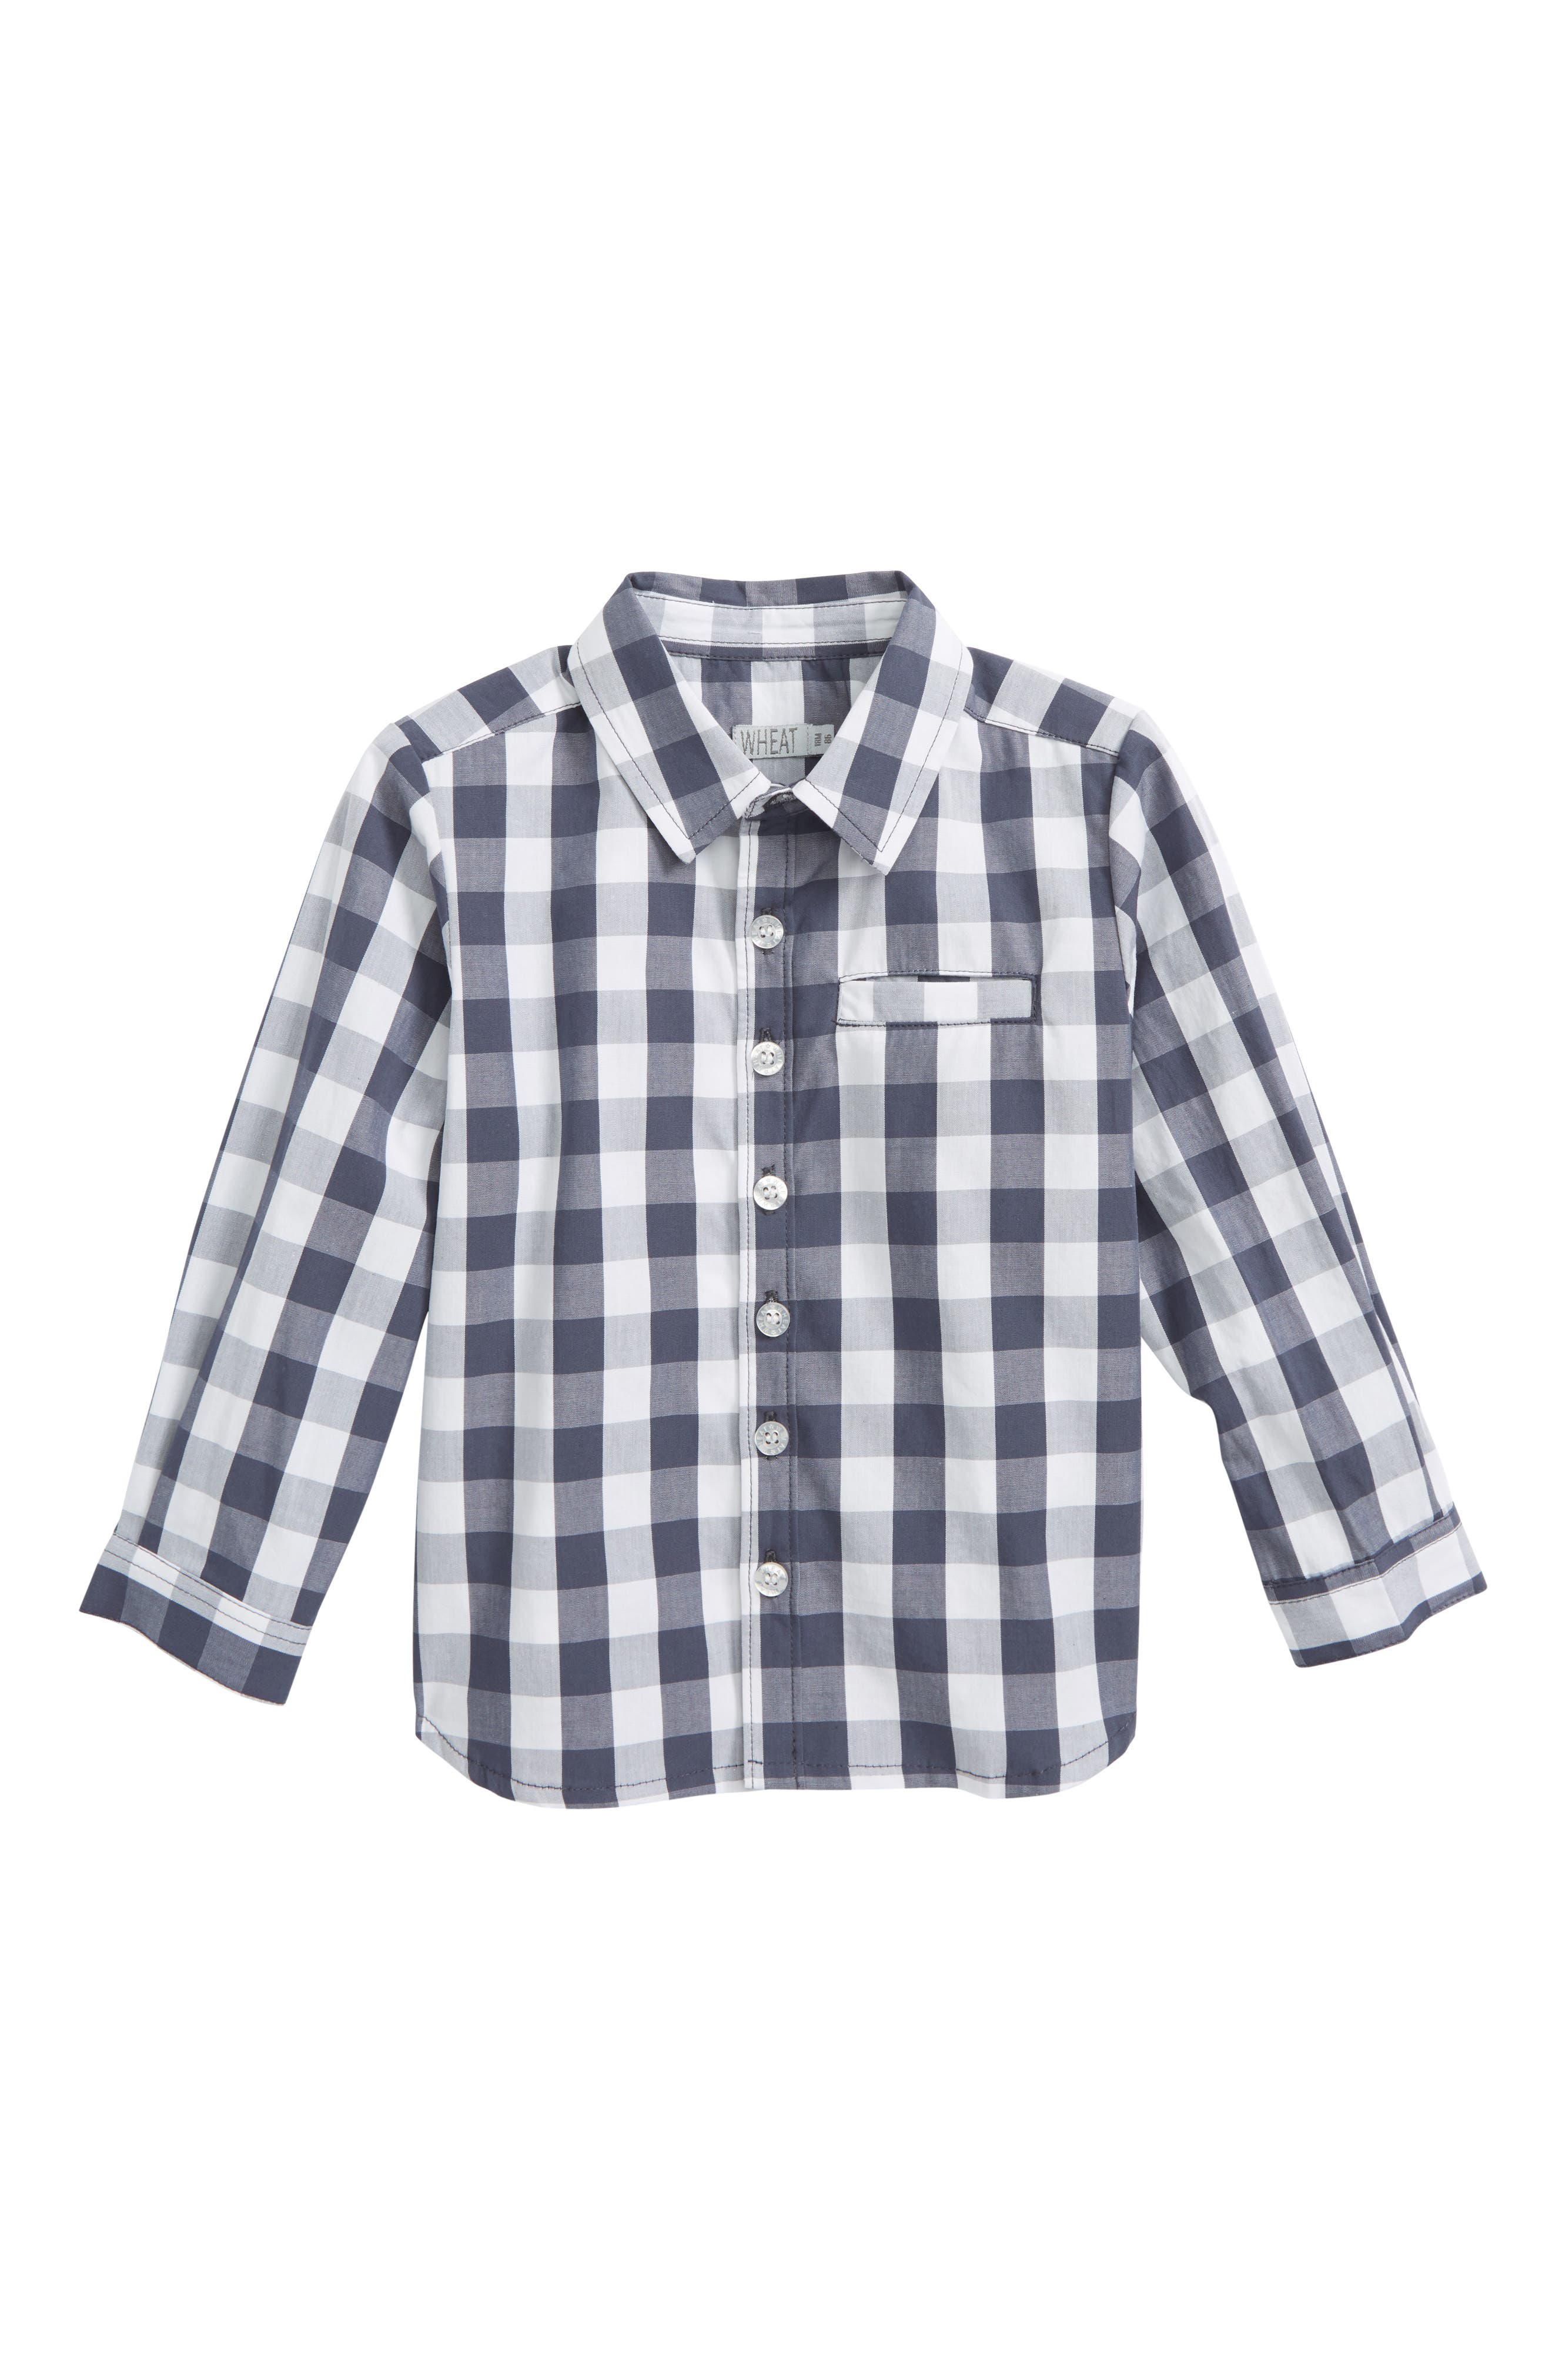 Ellias Check Shirt,                             Main thumbnail 1, color,                             023